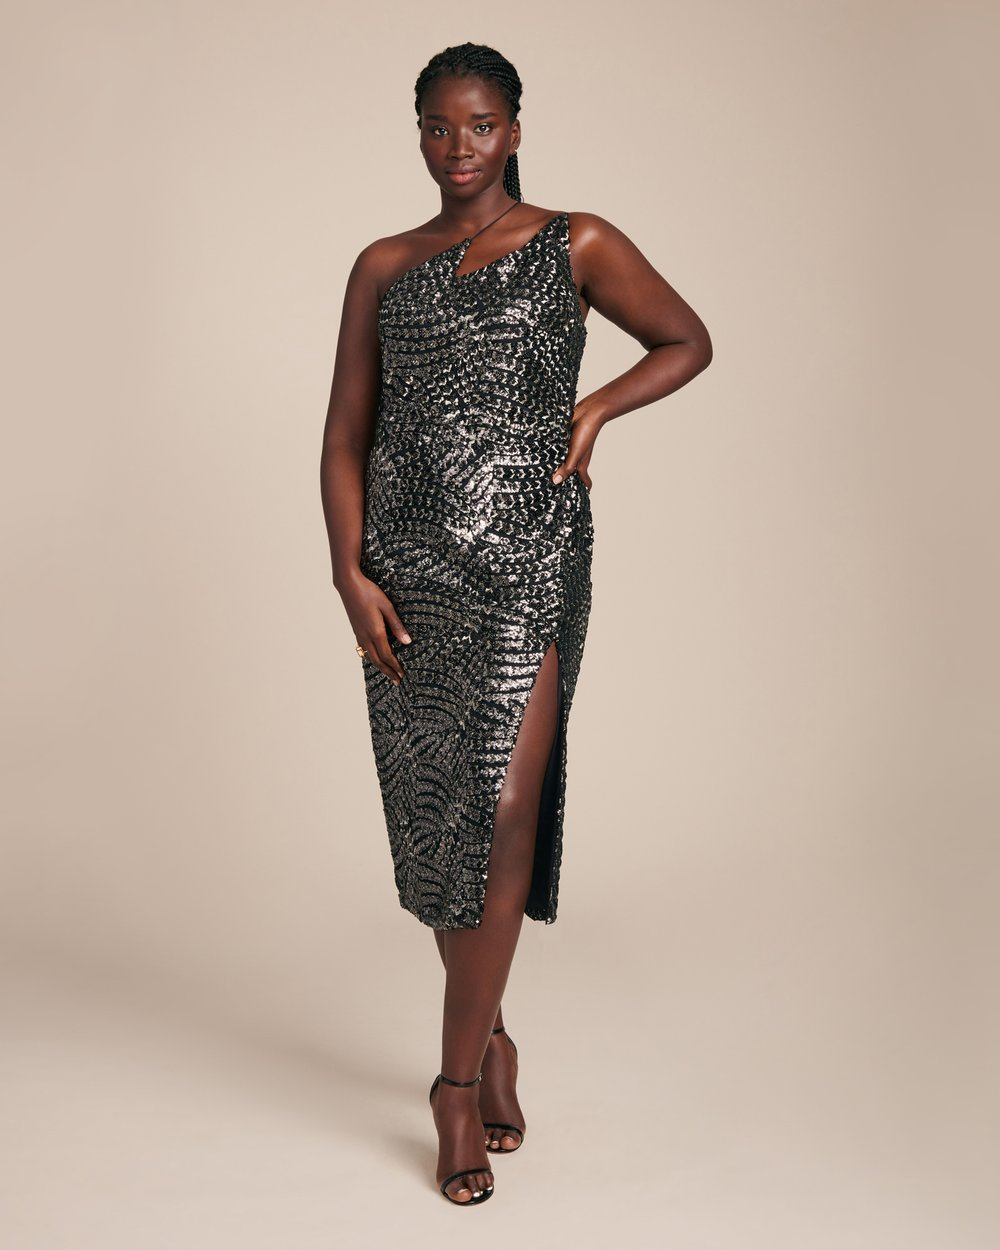 Luxury Plus SIze Fashion Finds at 11 Honore: CHRISTIAN SIRIANO Black & Silver Sequin Zig Zag Plus Size Dress